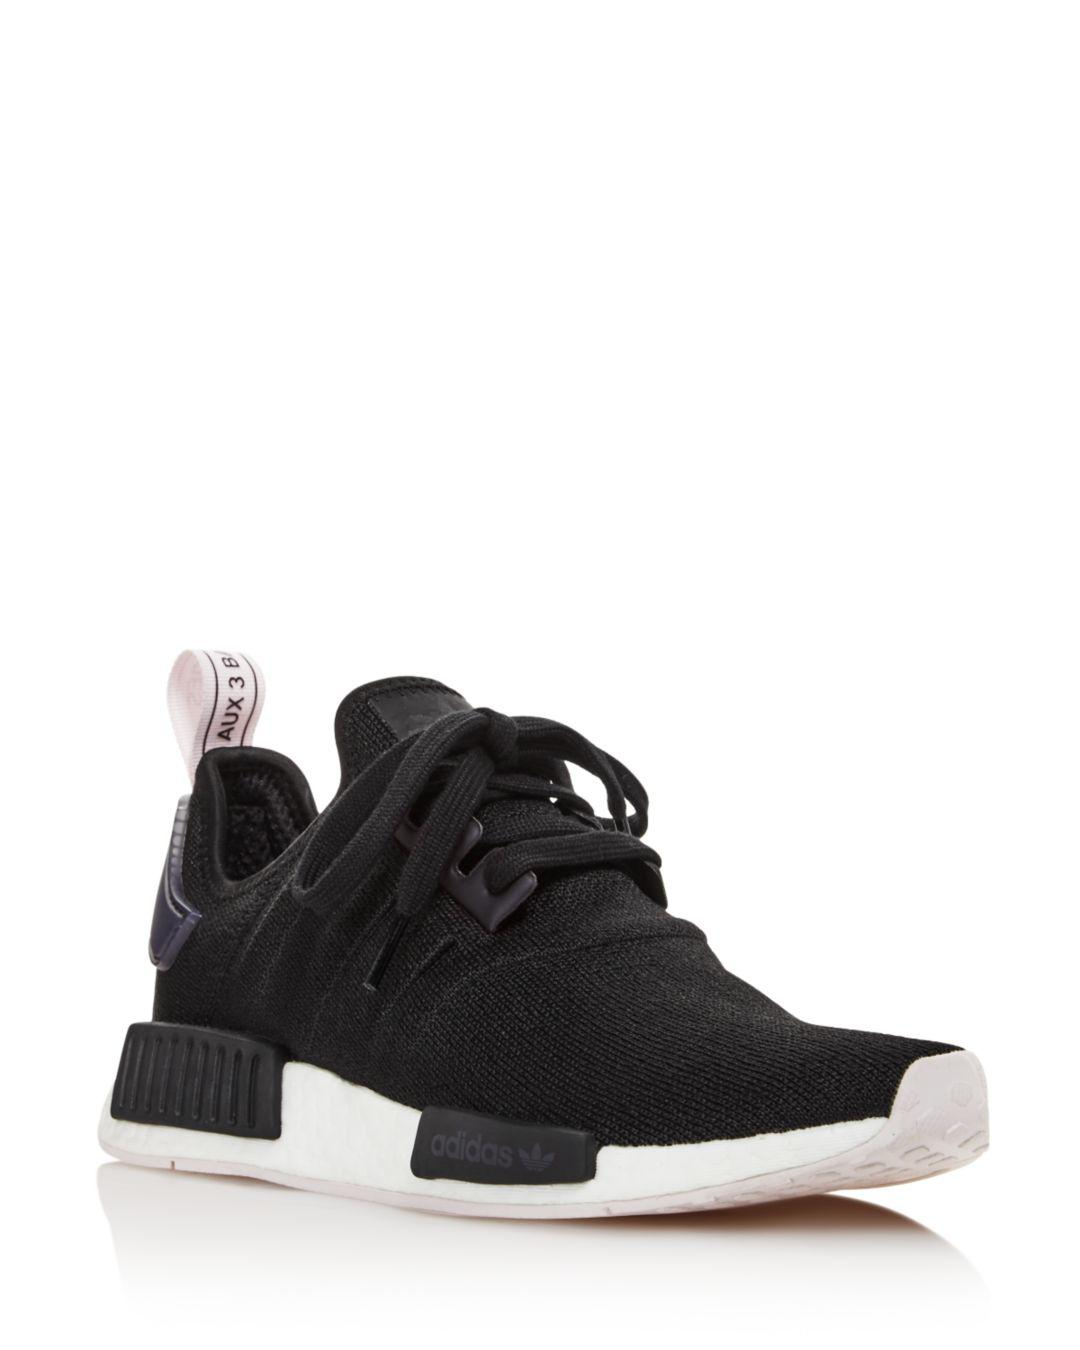 competitive price 77fe9 40a4f adidas. Black Women s Nmd R1 Knit Lace Up Sneakers